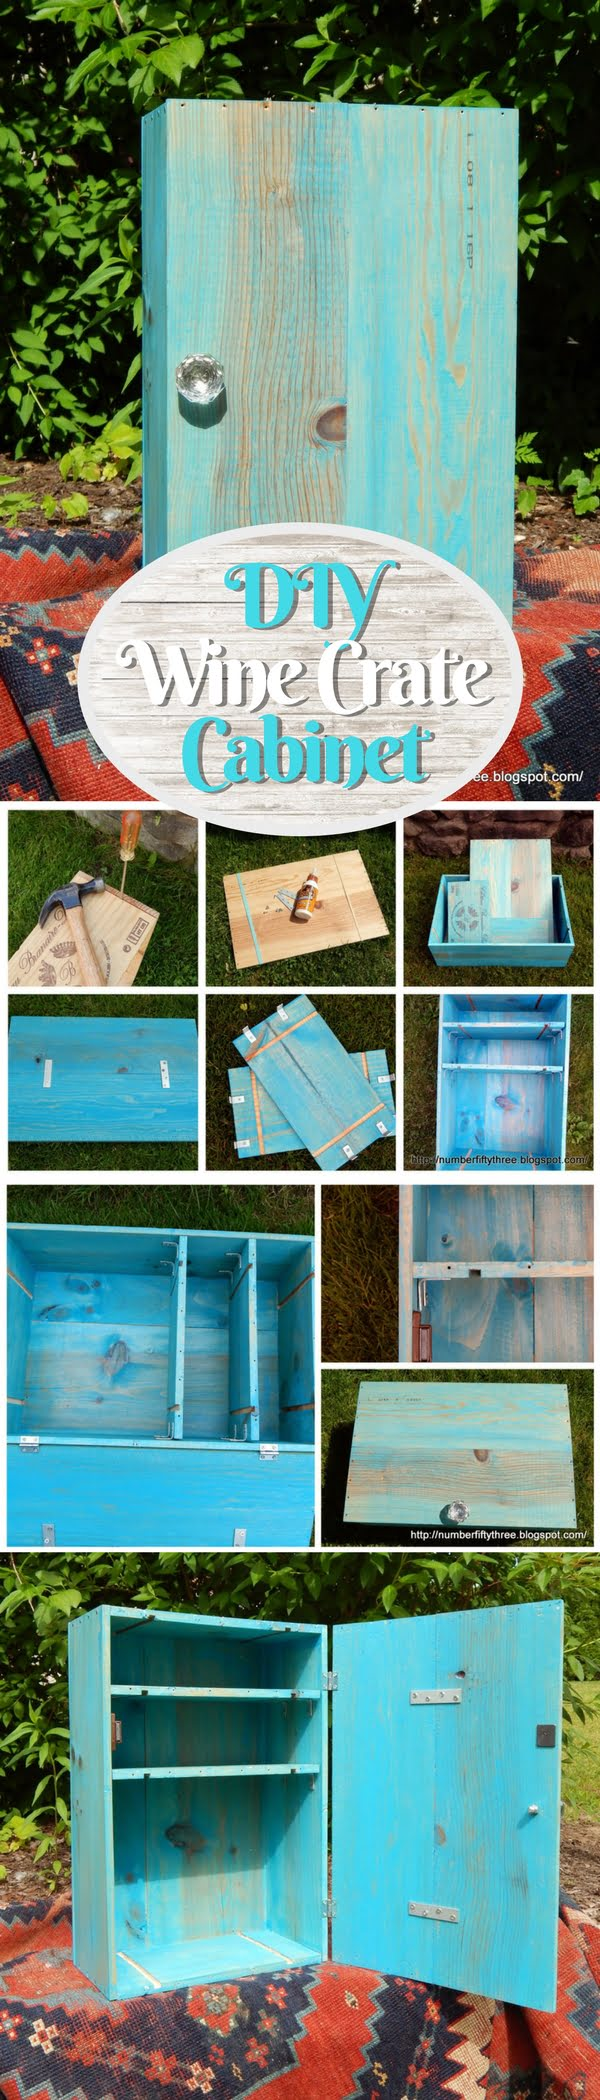 15 Brilliant DIY Crafts You Can Make with Wood Crates - Check out how to build an easy DIY cabinet from wine crates